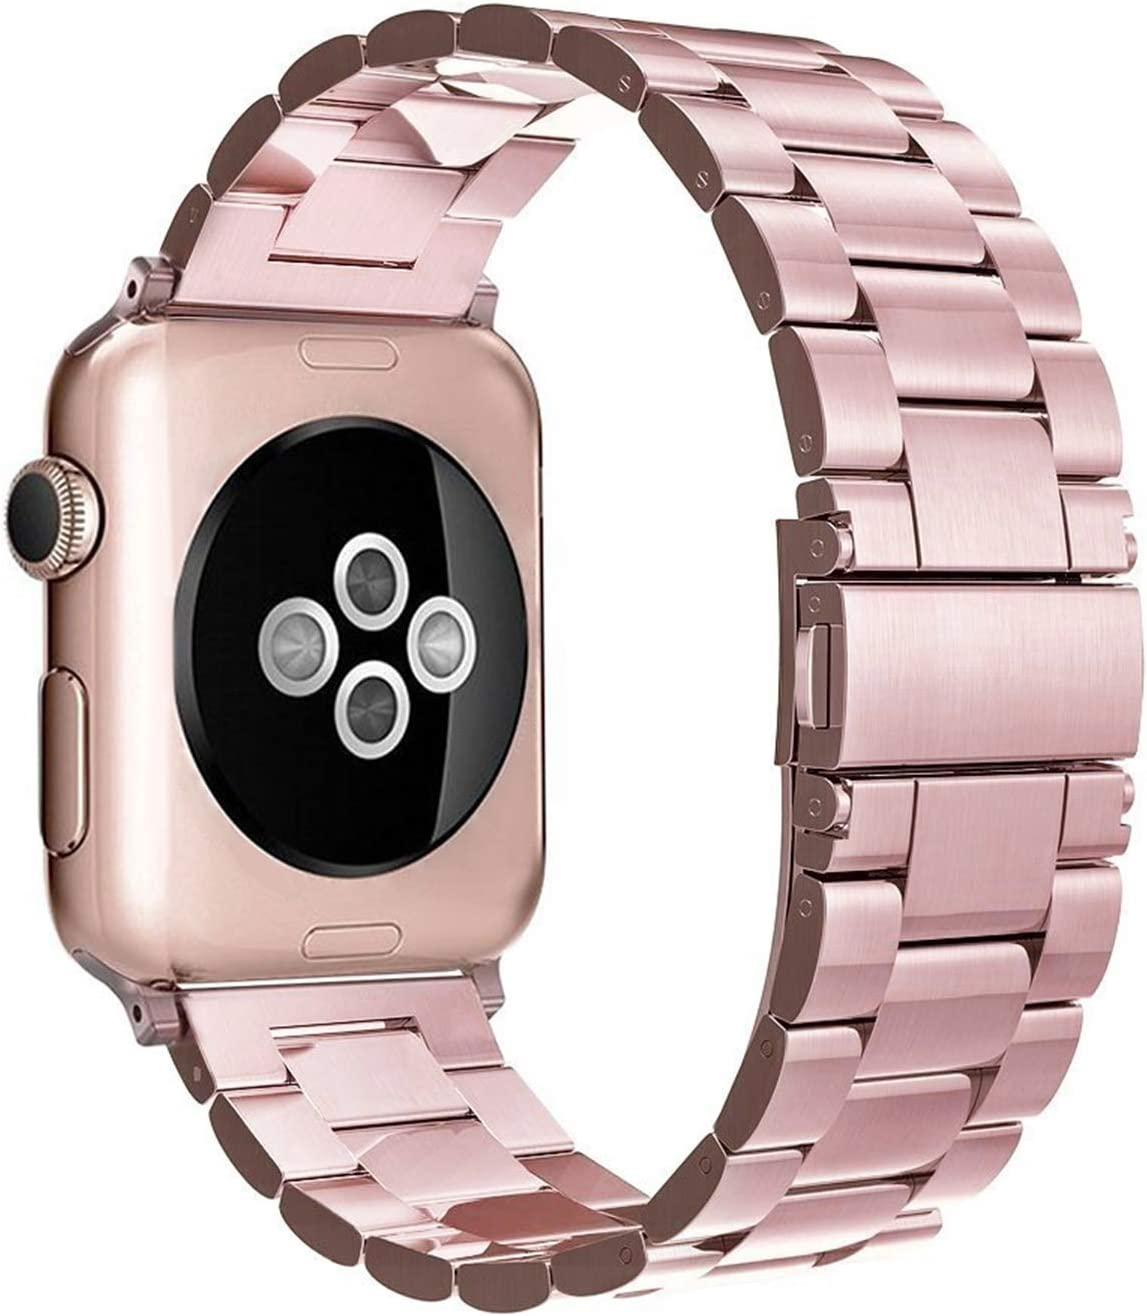 Malla para reloj Apple Watch 42mm and 44mm Series 1 2 3 4 5